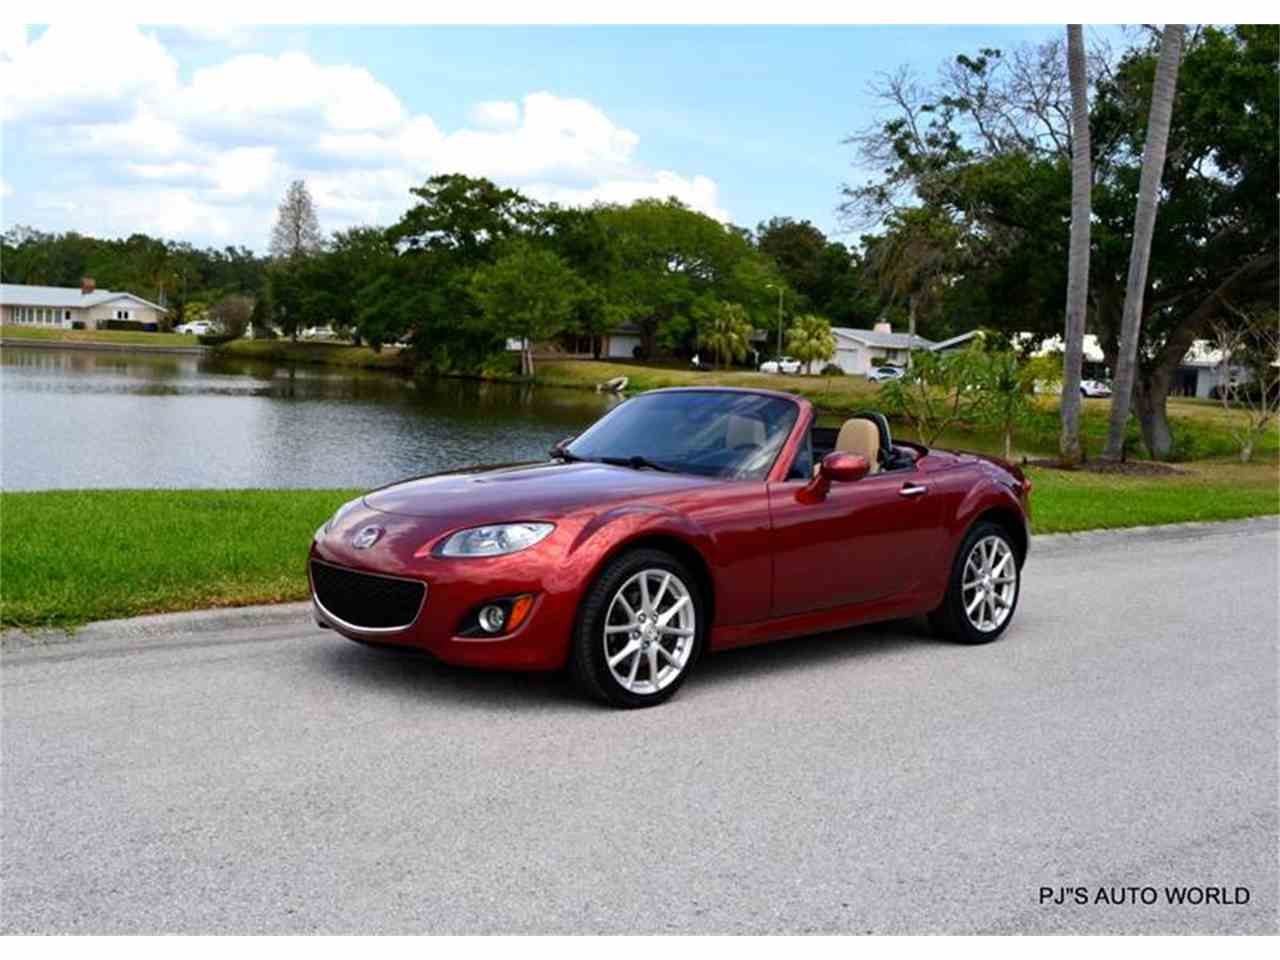 Large Picture of '12 Mazda Miata located in Florida - $16,600.00 Offered by PJ's Auto World - L6IJ